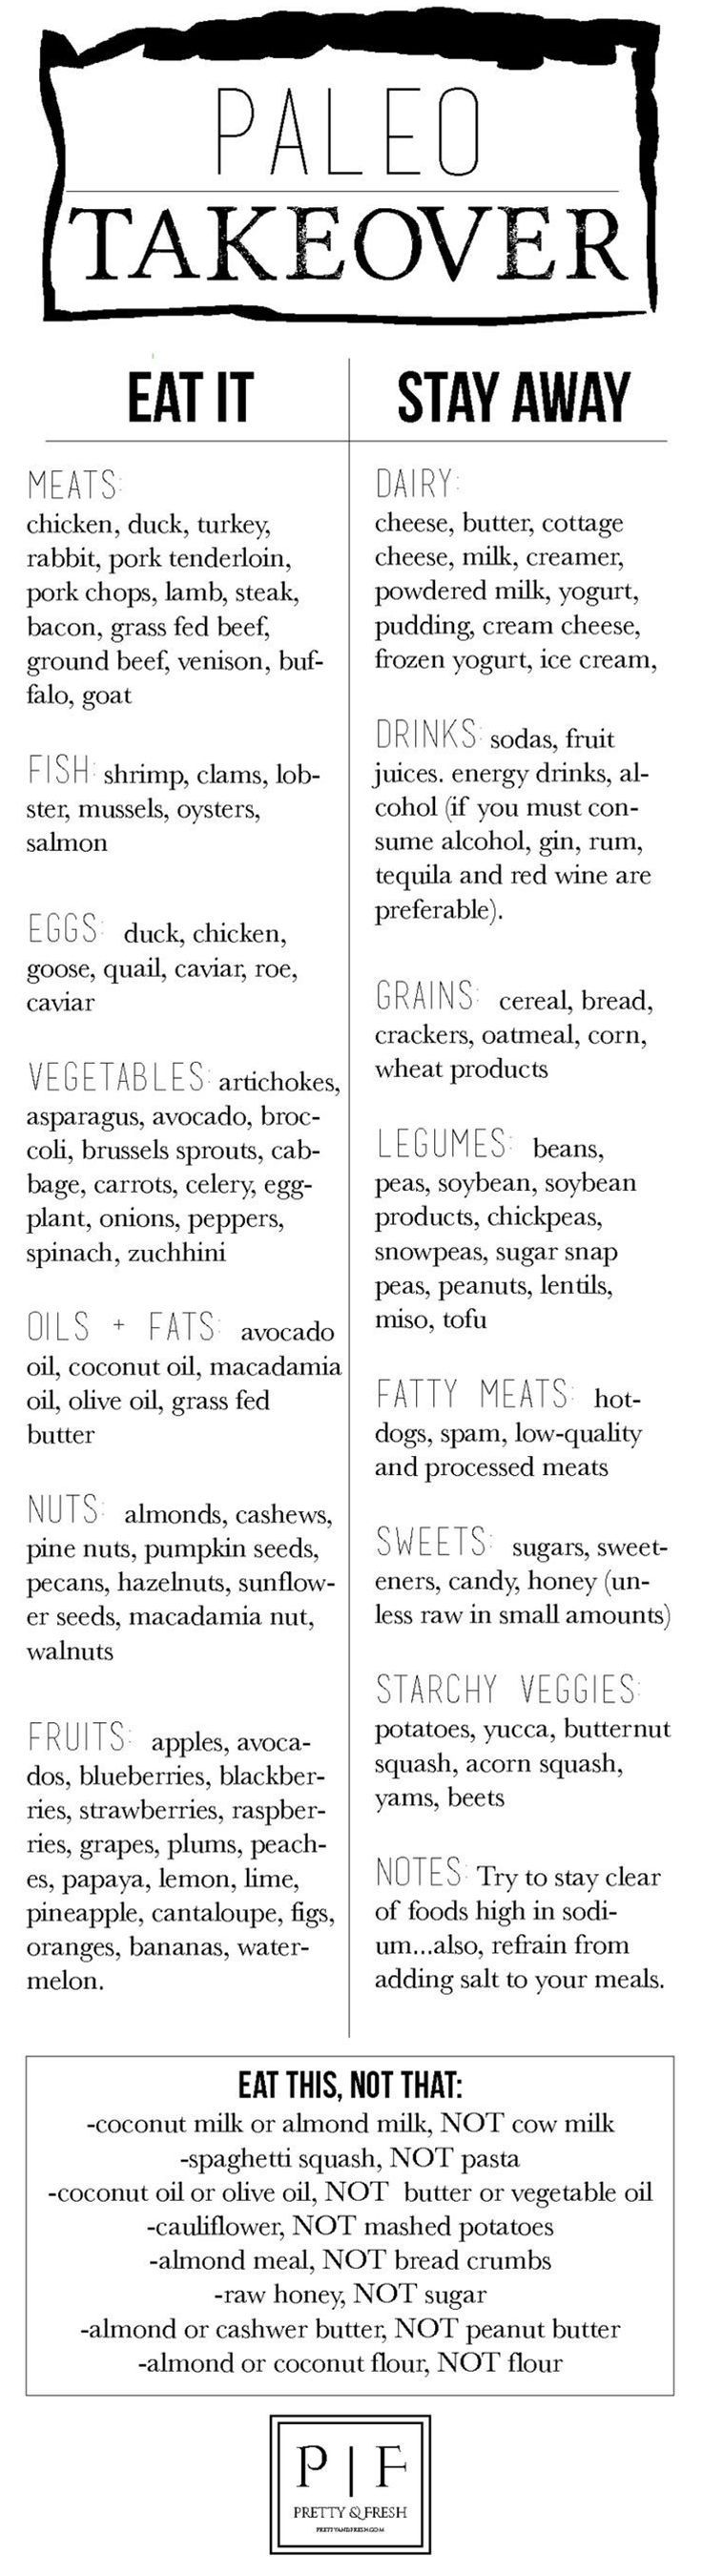 "Eat It, Stay Away Comments: ""I do not strictly adhere to a paleo diet, but these are nice guidelines."" ""Butternut squash and sweet potato are allowed"" ""Dairy is more of a gray area, and at any rate, grains should always be first on the NO pile"""